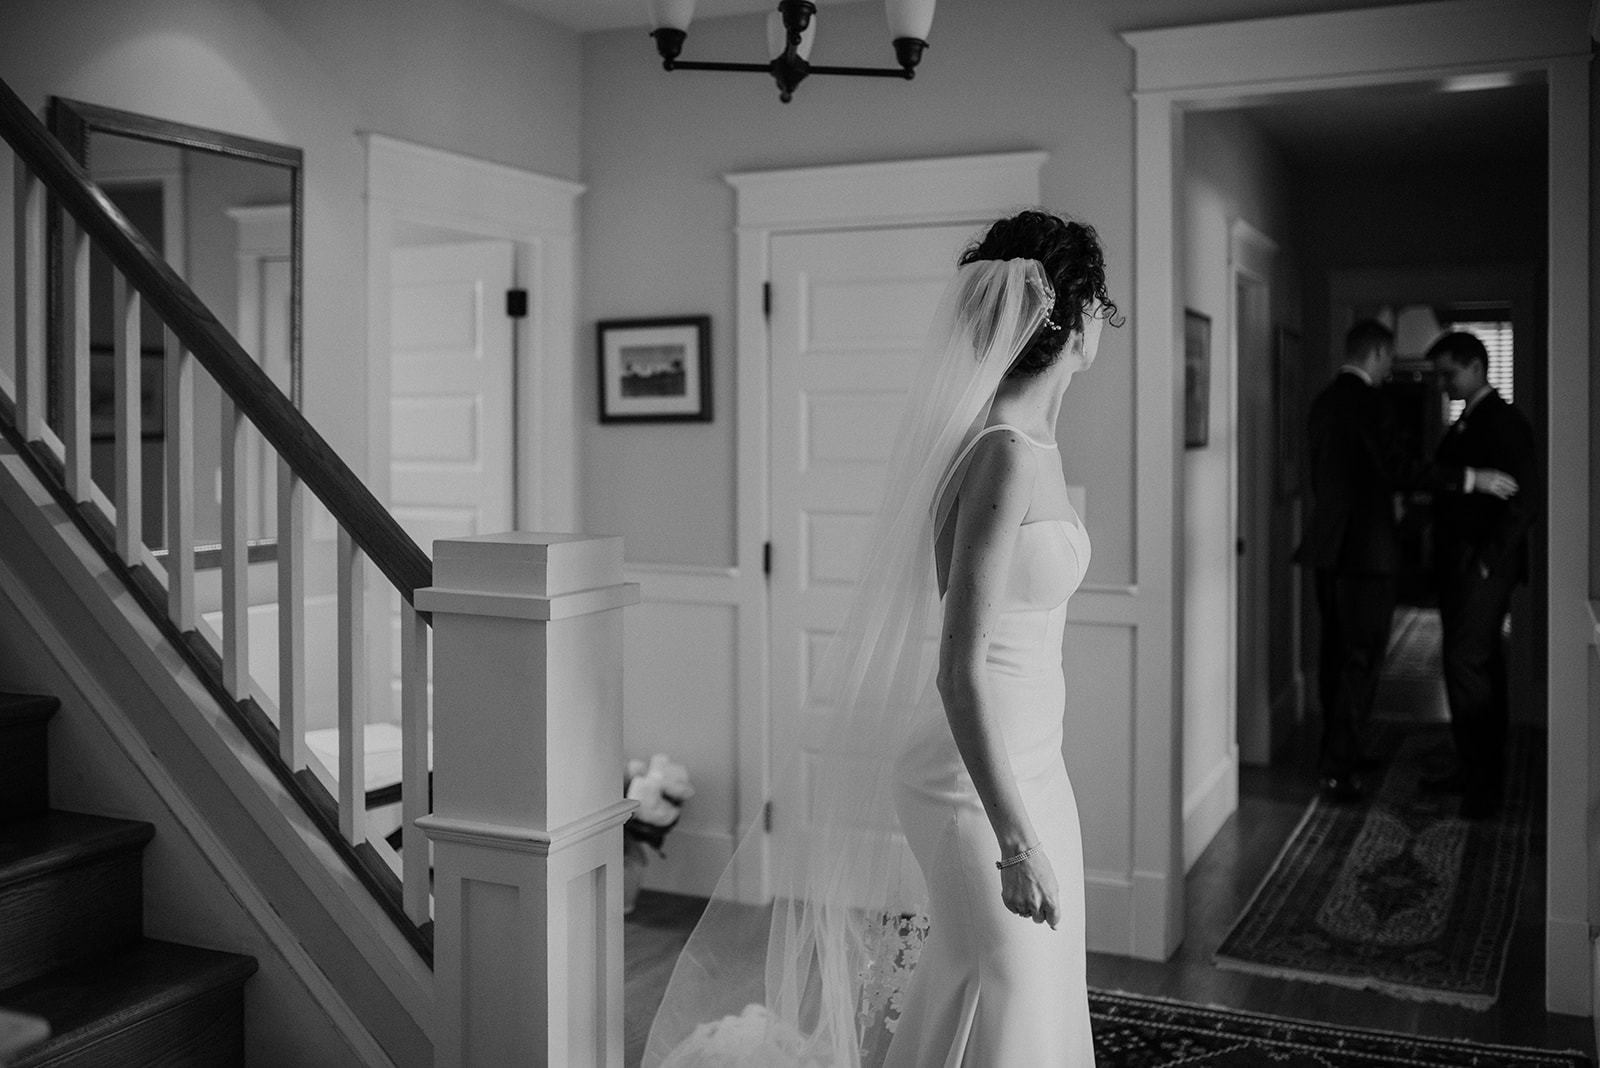 A bride looks back at her groom before he goes to walk down the aisle at their outdoor wedding ceremony at Blue Hill Farm in Waterford, VA.